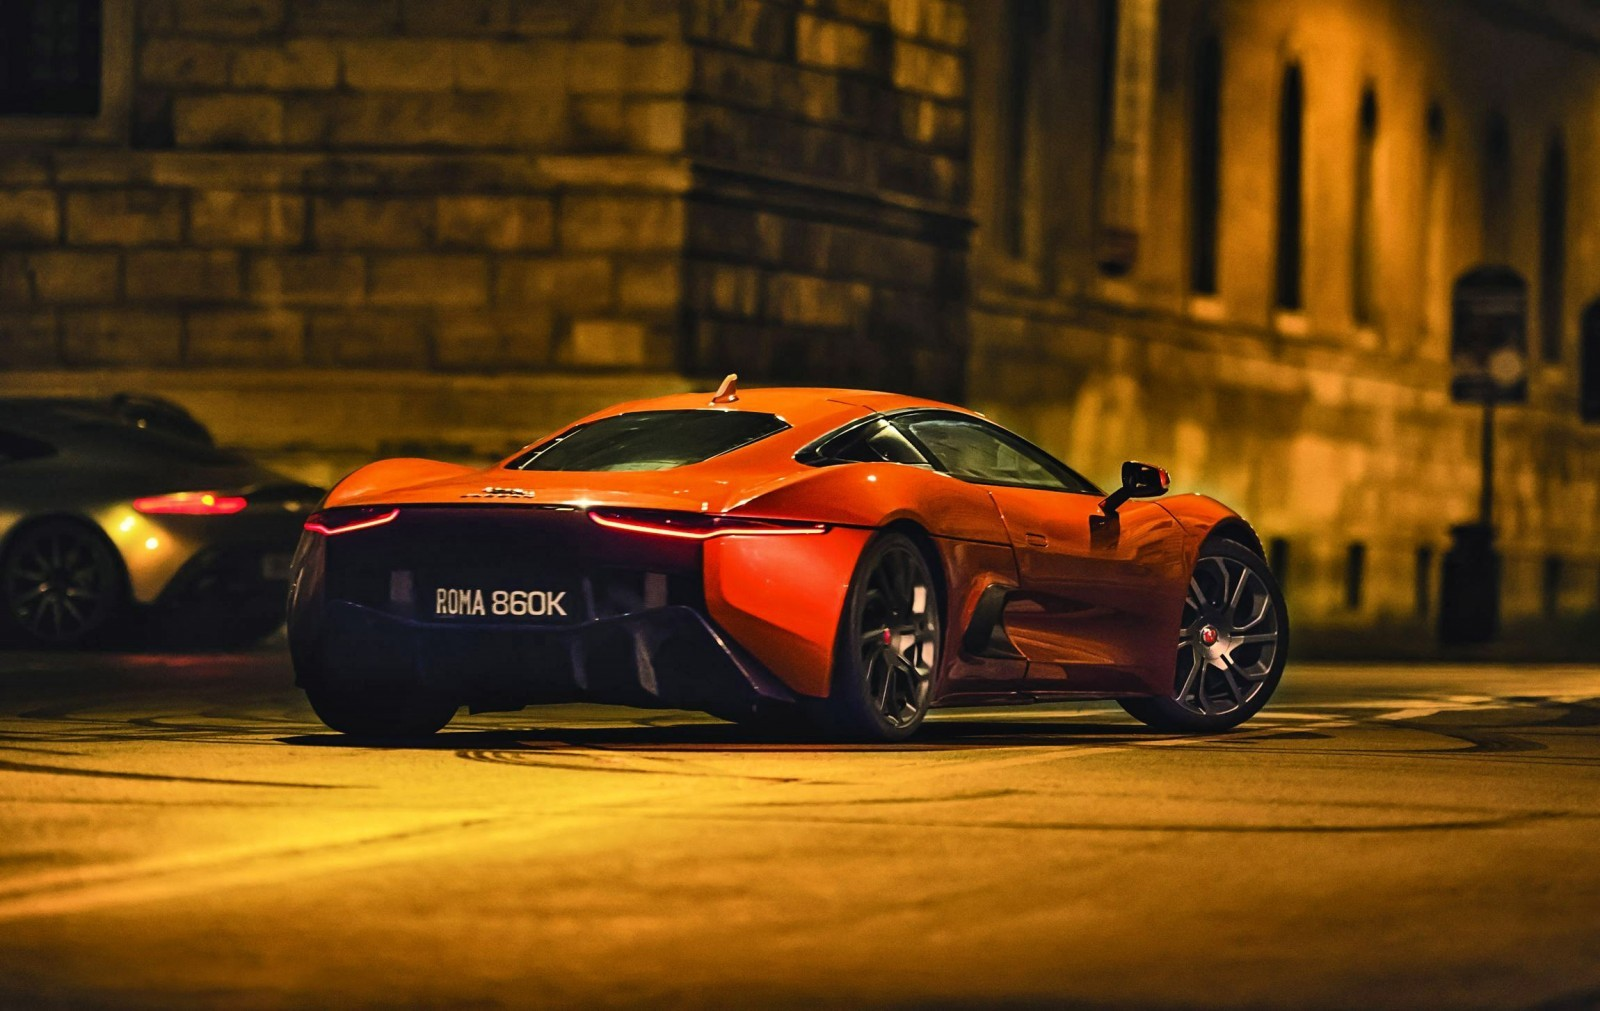 James Bond Cars Used In Spectre